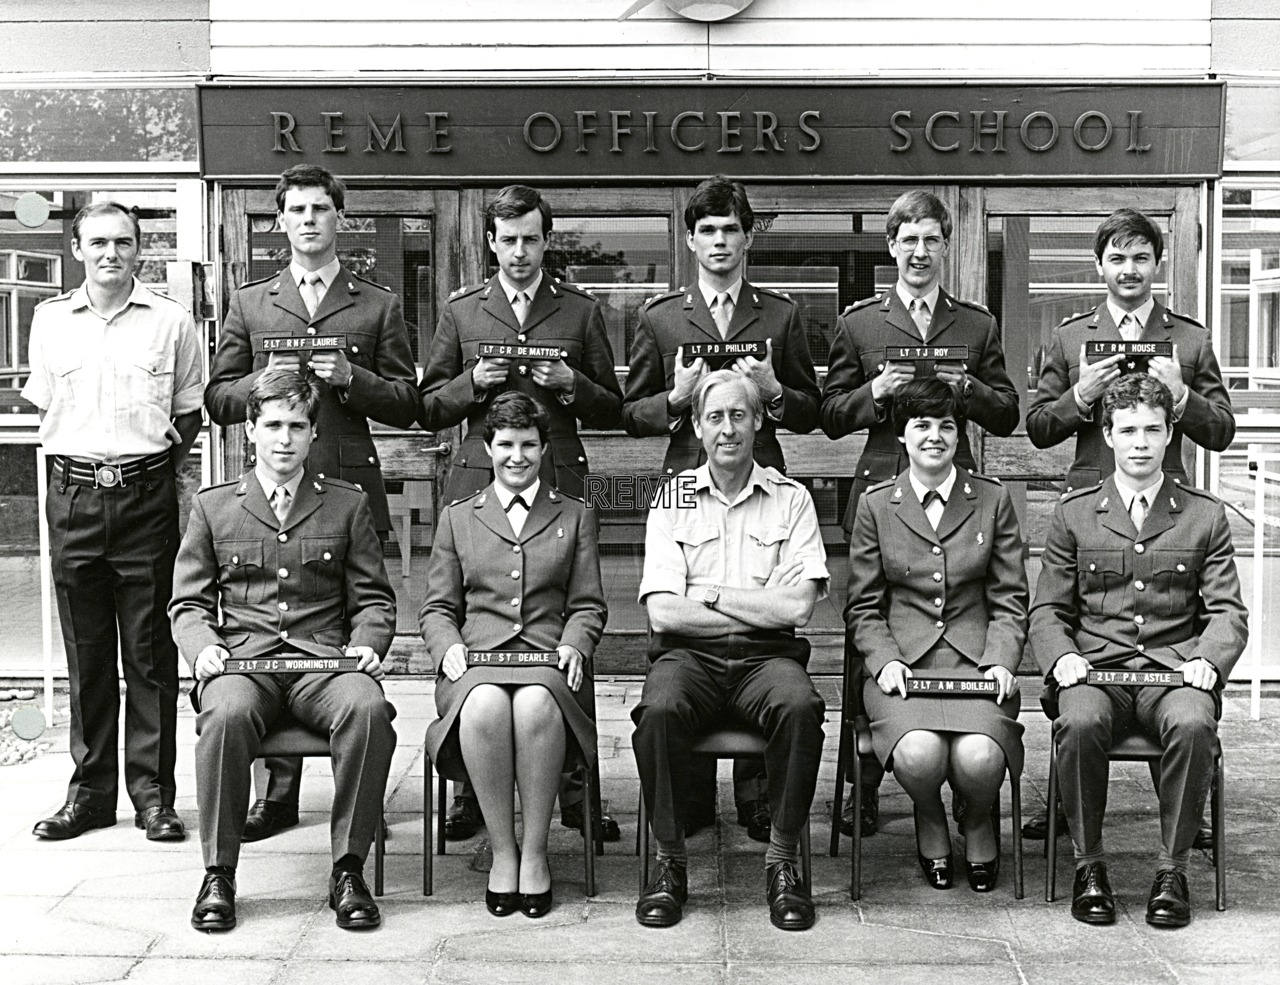 No 75 Regular Young Officers' Course, REME Officers' School, 1981.